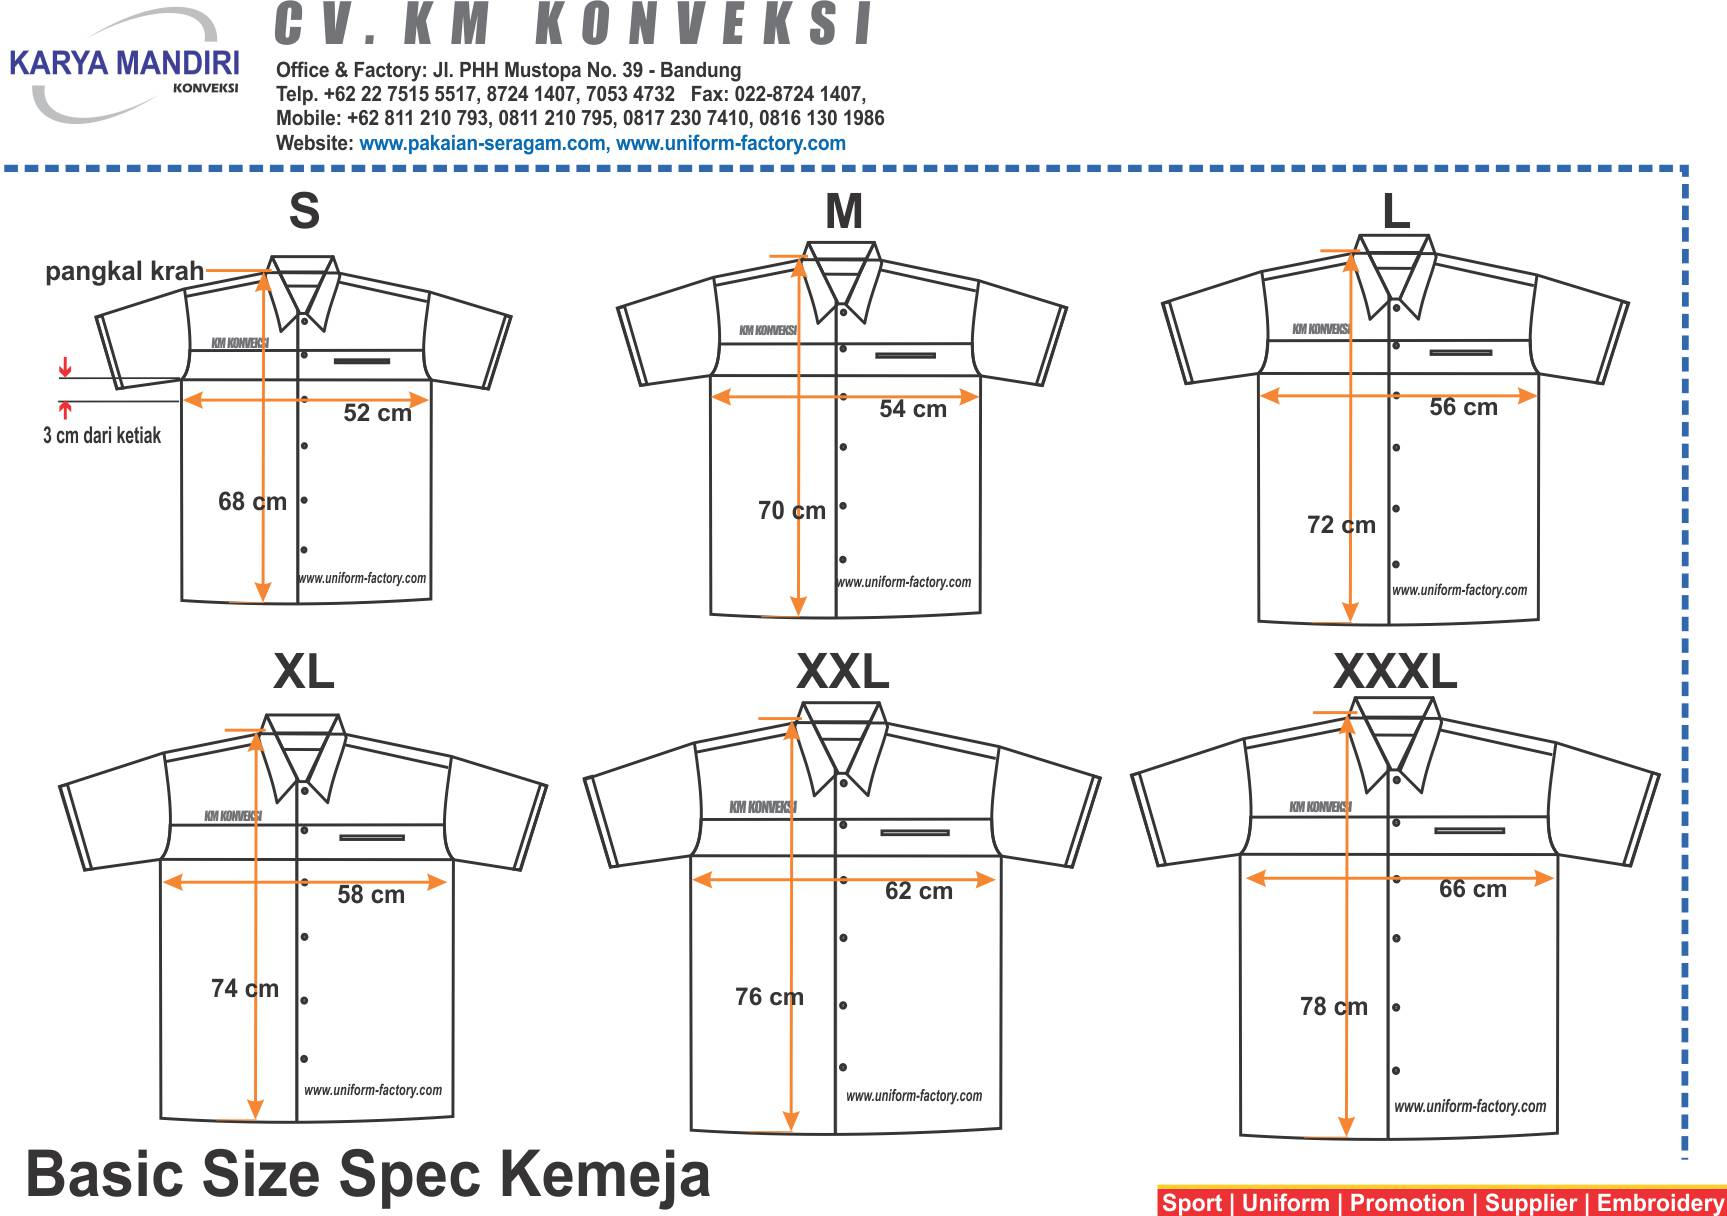 Konveksi Uniform Seragam Kerjakemejapolo Shirt Training Spak Wearpack Wear Pack Safety Model Setelan Size Spec Kemeja